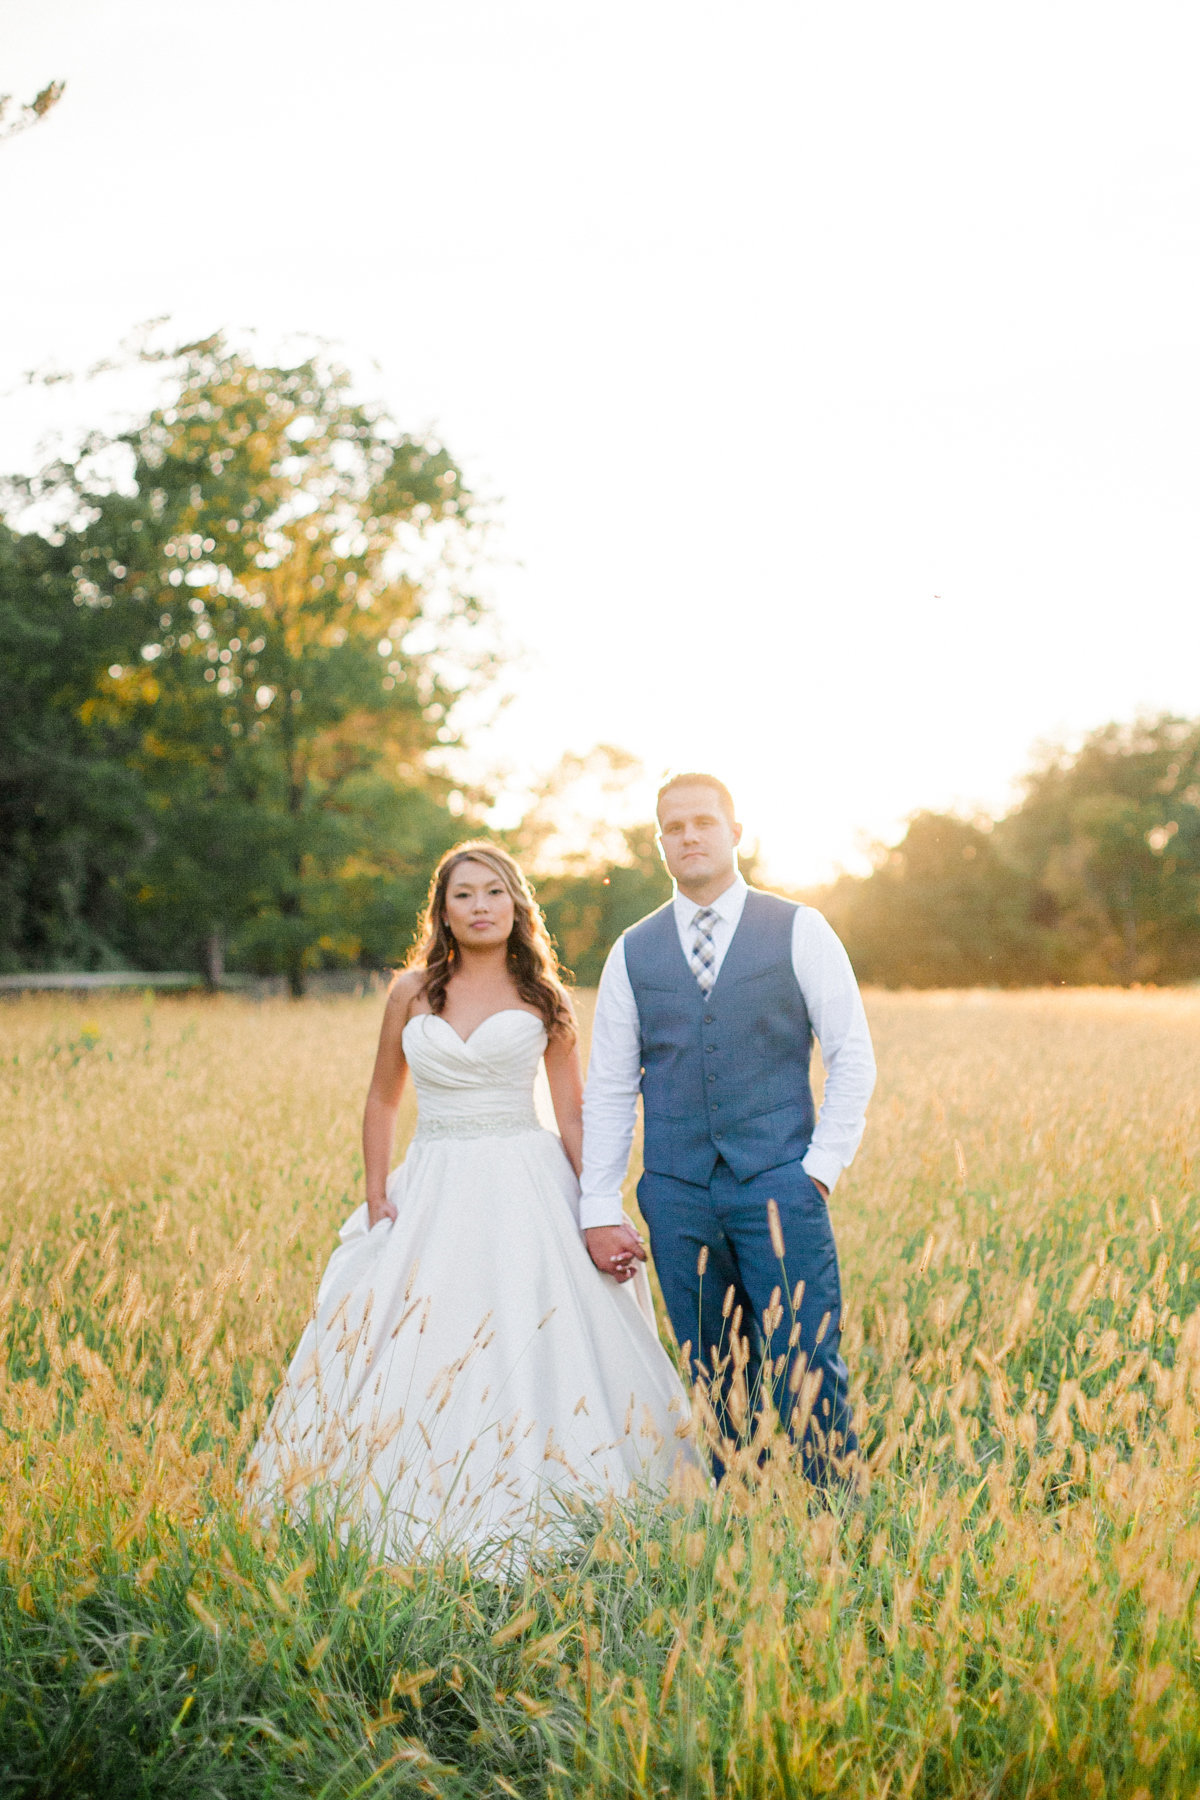 taryn christine photography wedding photographer mayowood stone barn couple stands hand in hand